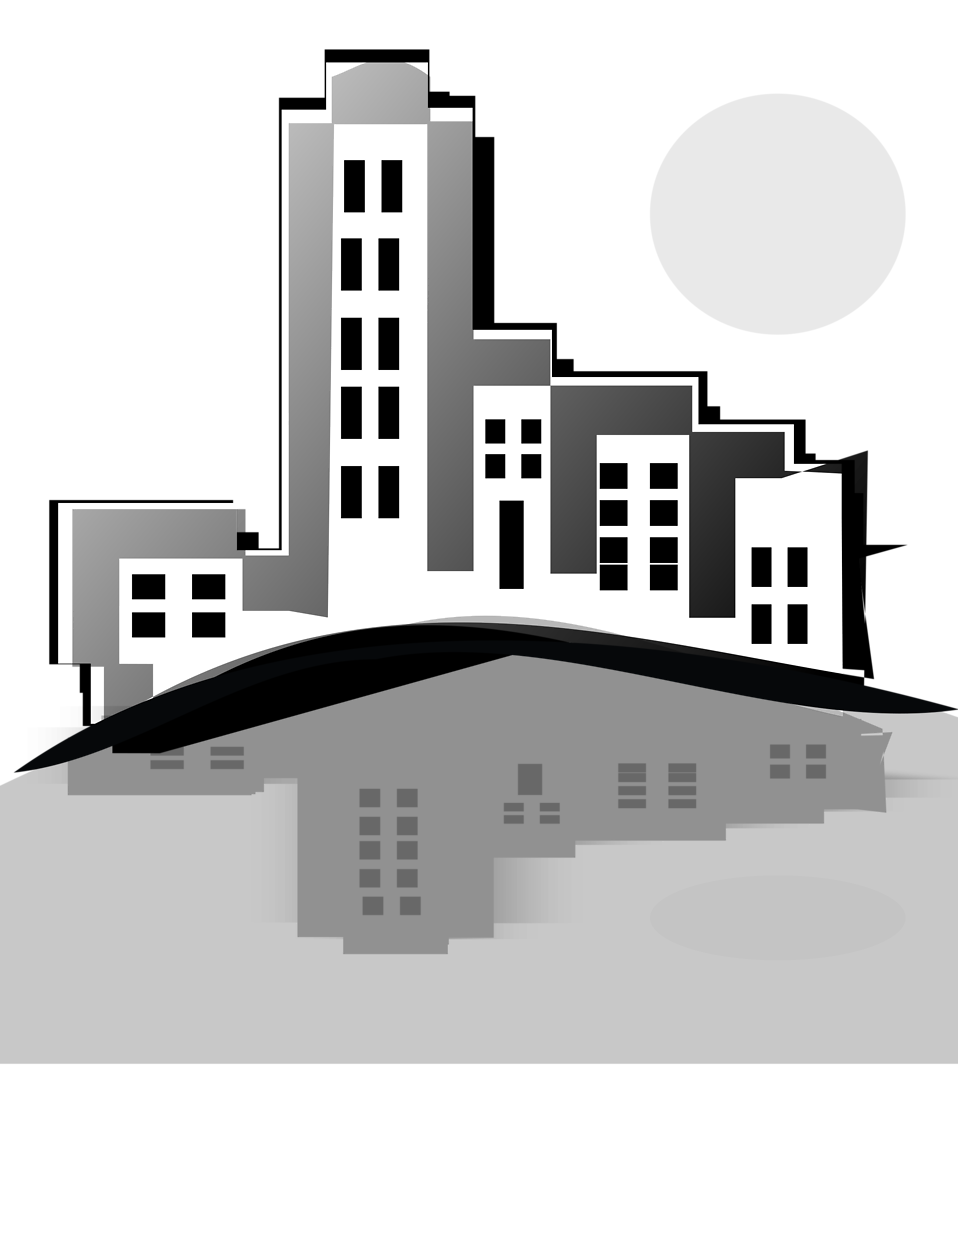 Tower clipart town council, Tower town council Transparent.